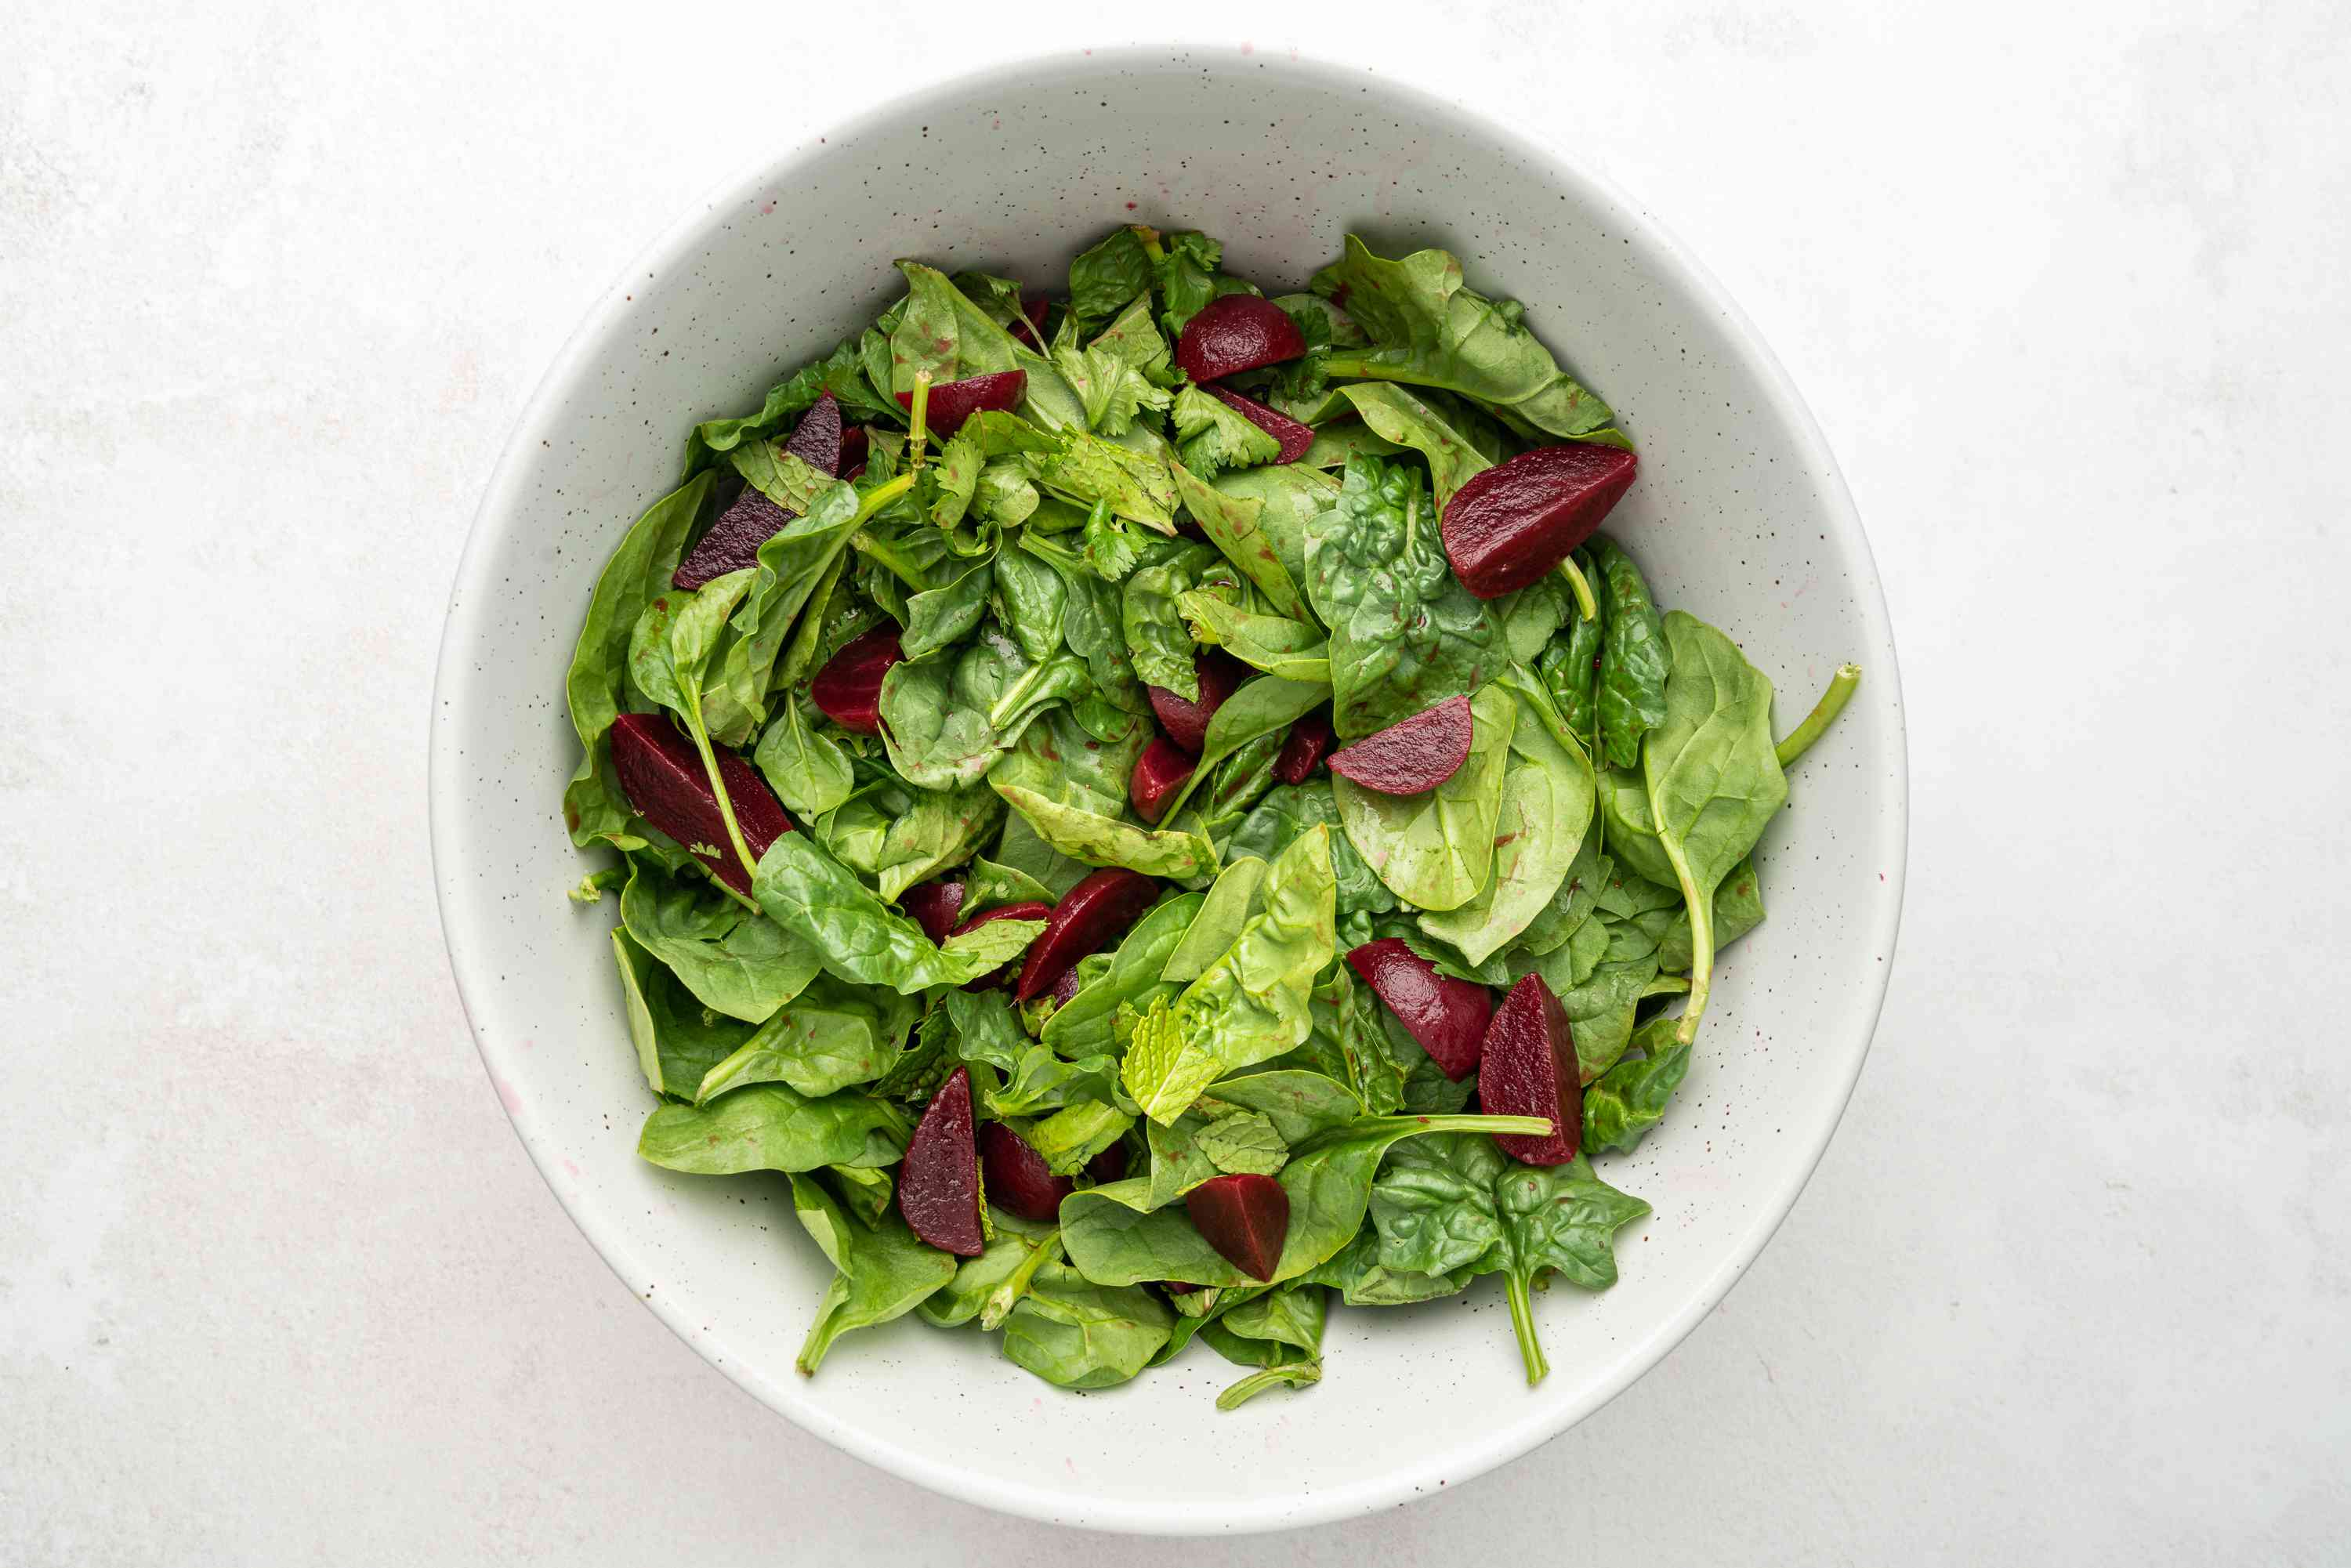 Mix together the beetroot wedges, the spinach, and most of the chopped mint and coriander in a large serving bowl